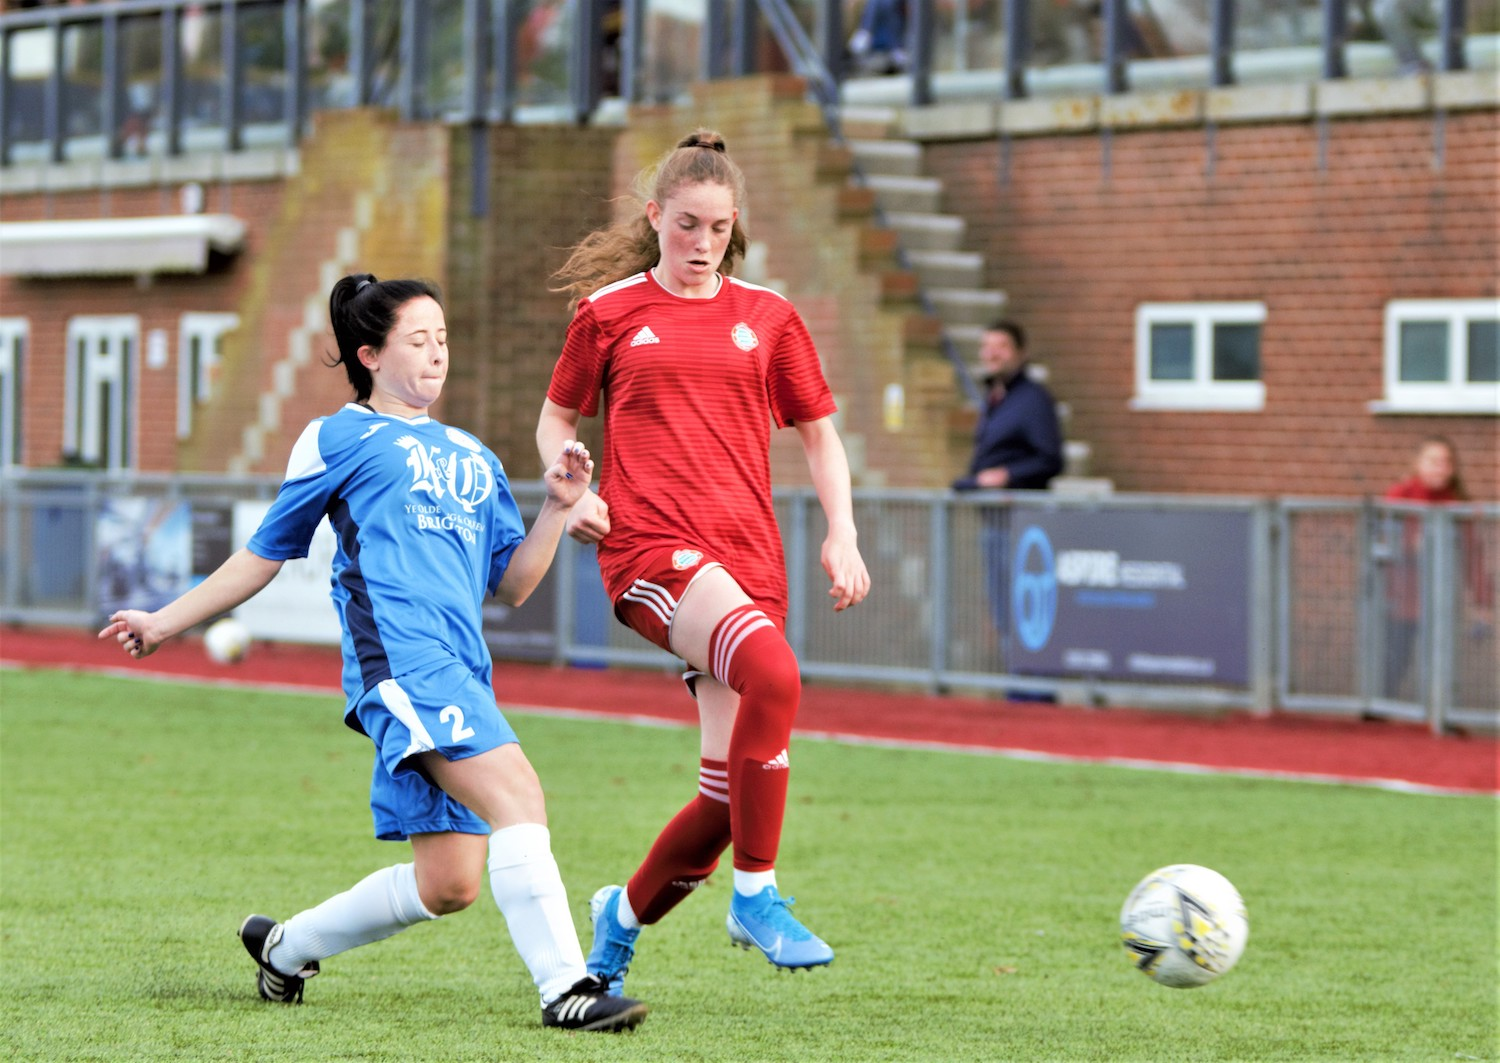 Read the full article - Worthing fall to narrow Cup defeat